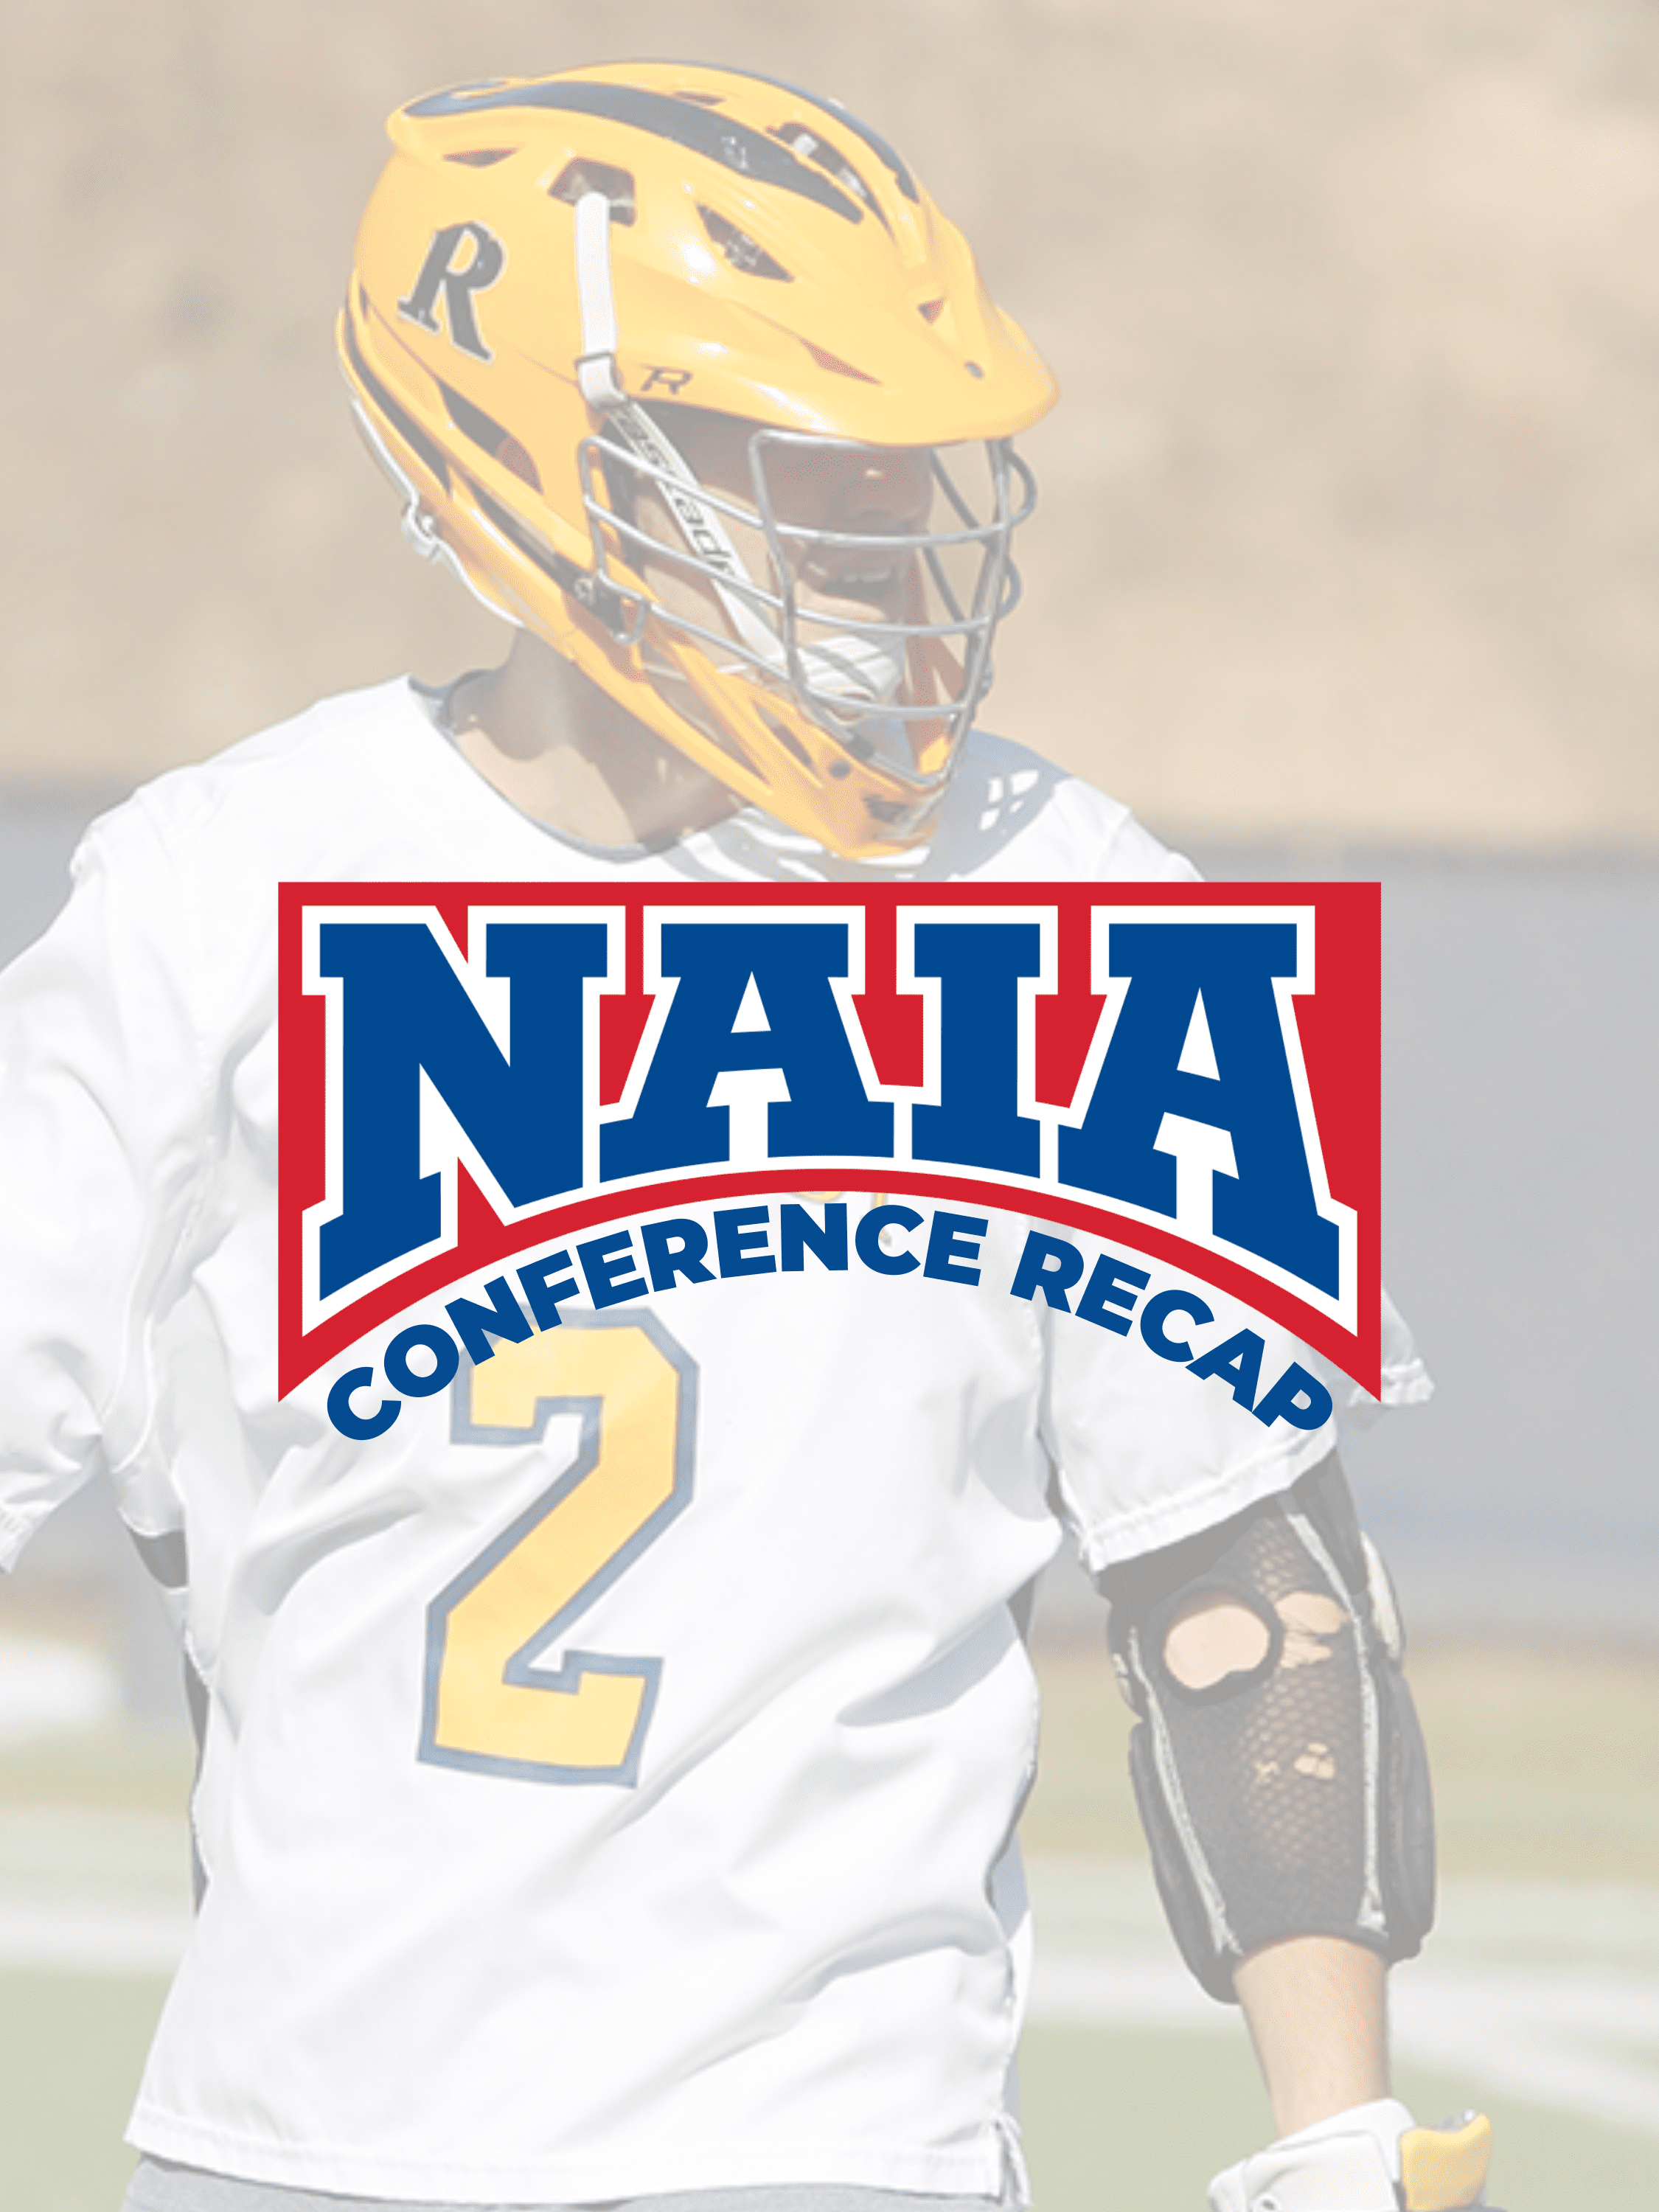 The men's NAIA conference championships completed last weekend, with Reinhardt, Columbia, and Indiana Tech winning their respective leagues.